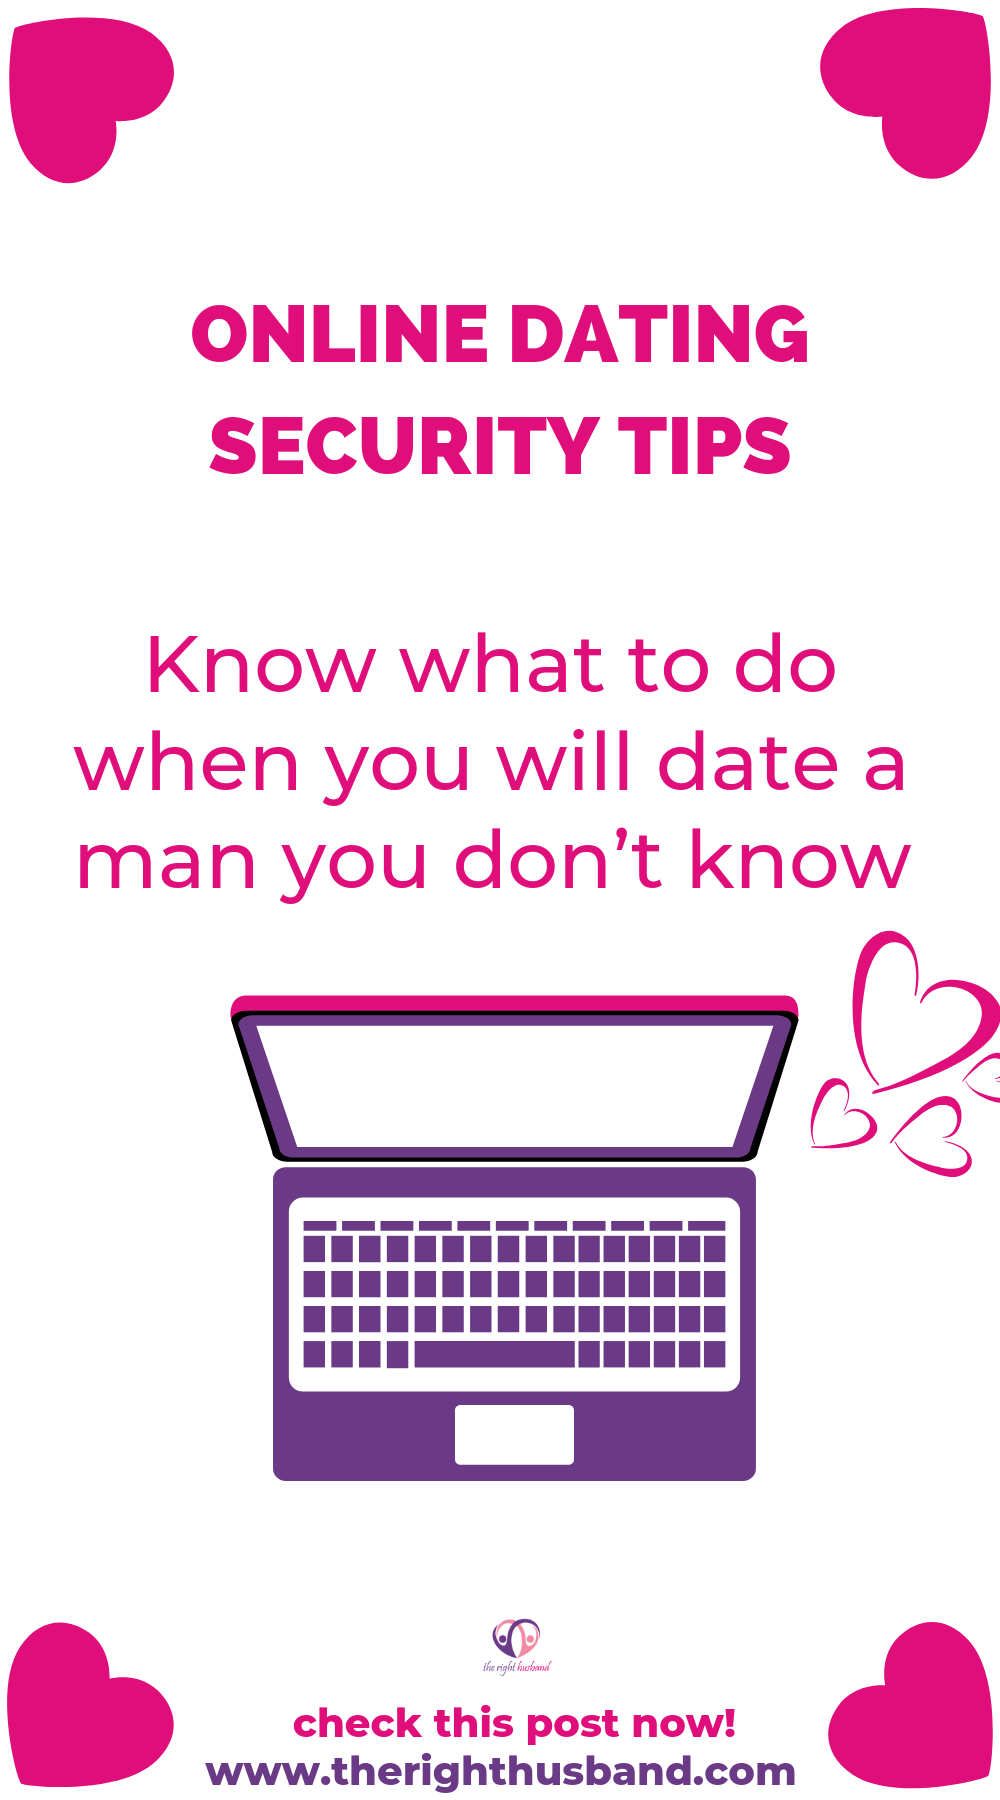 ONLINE DATING SECURITY TIPS_ Your first date